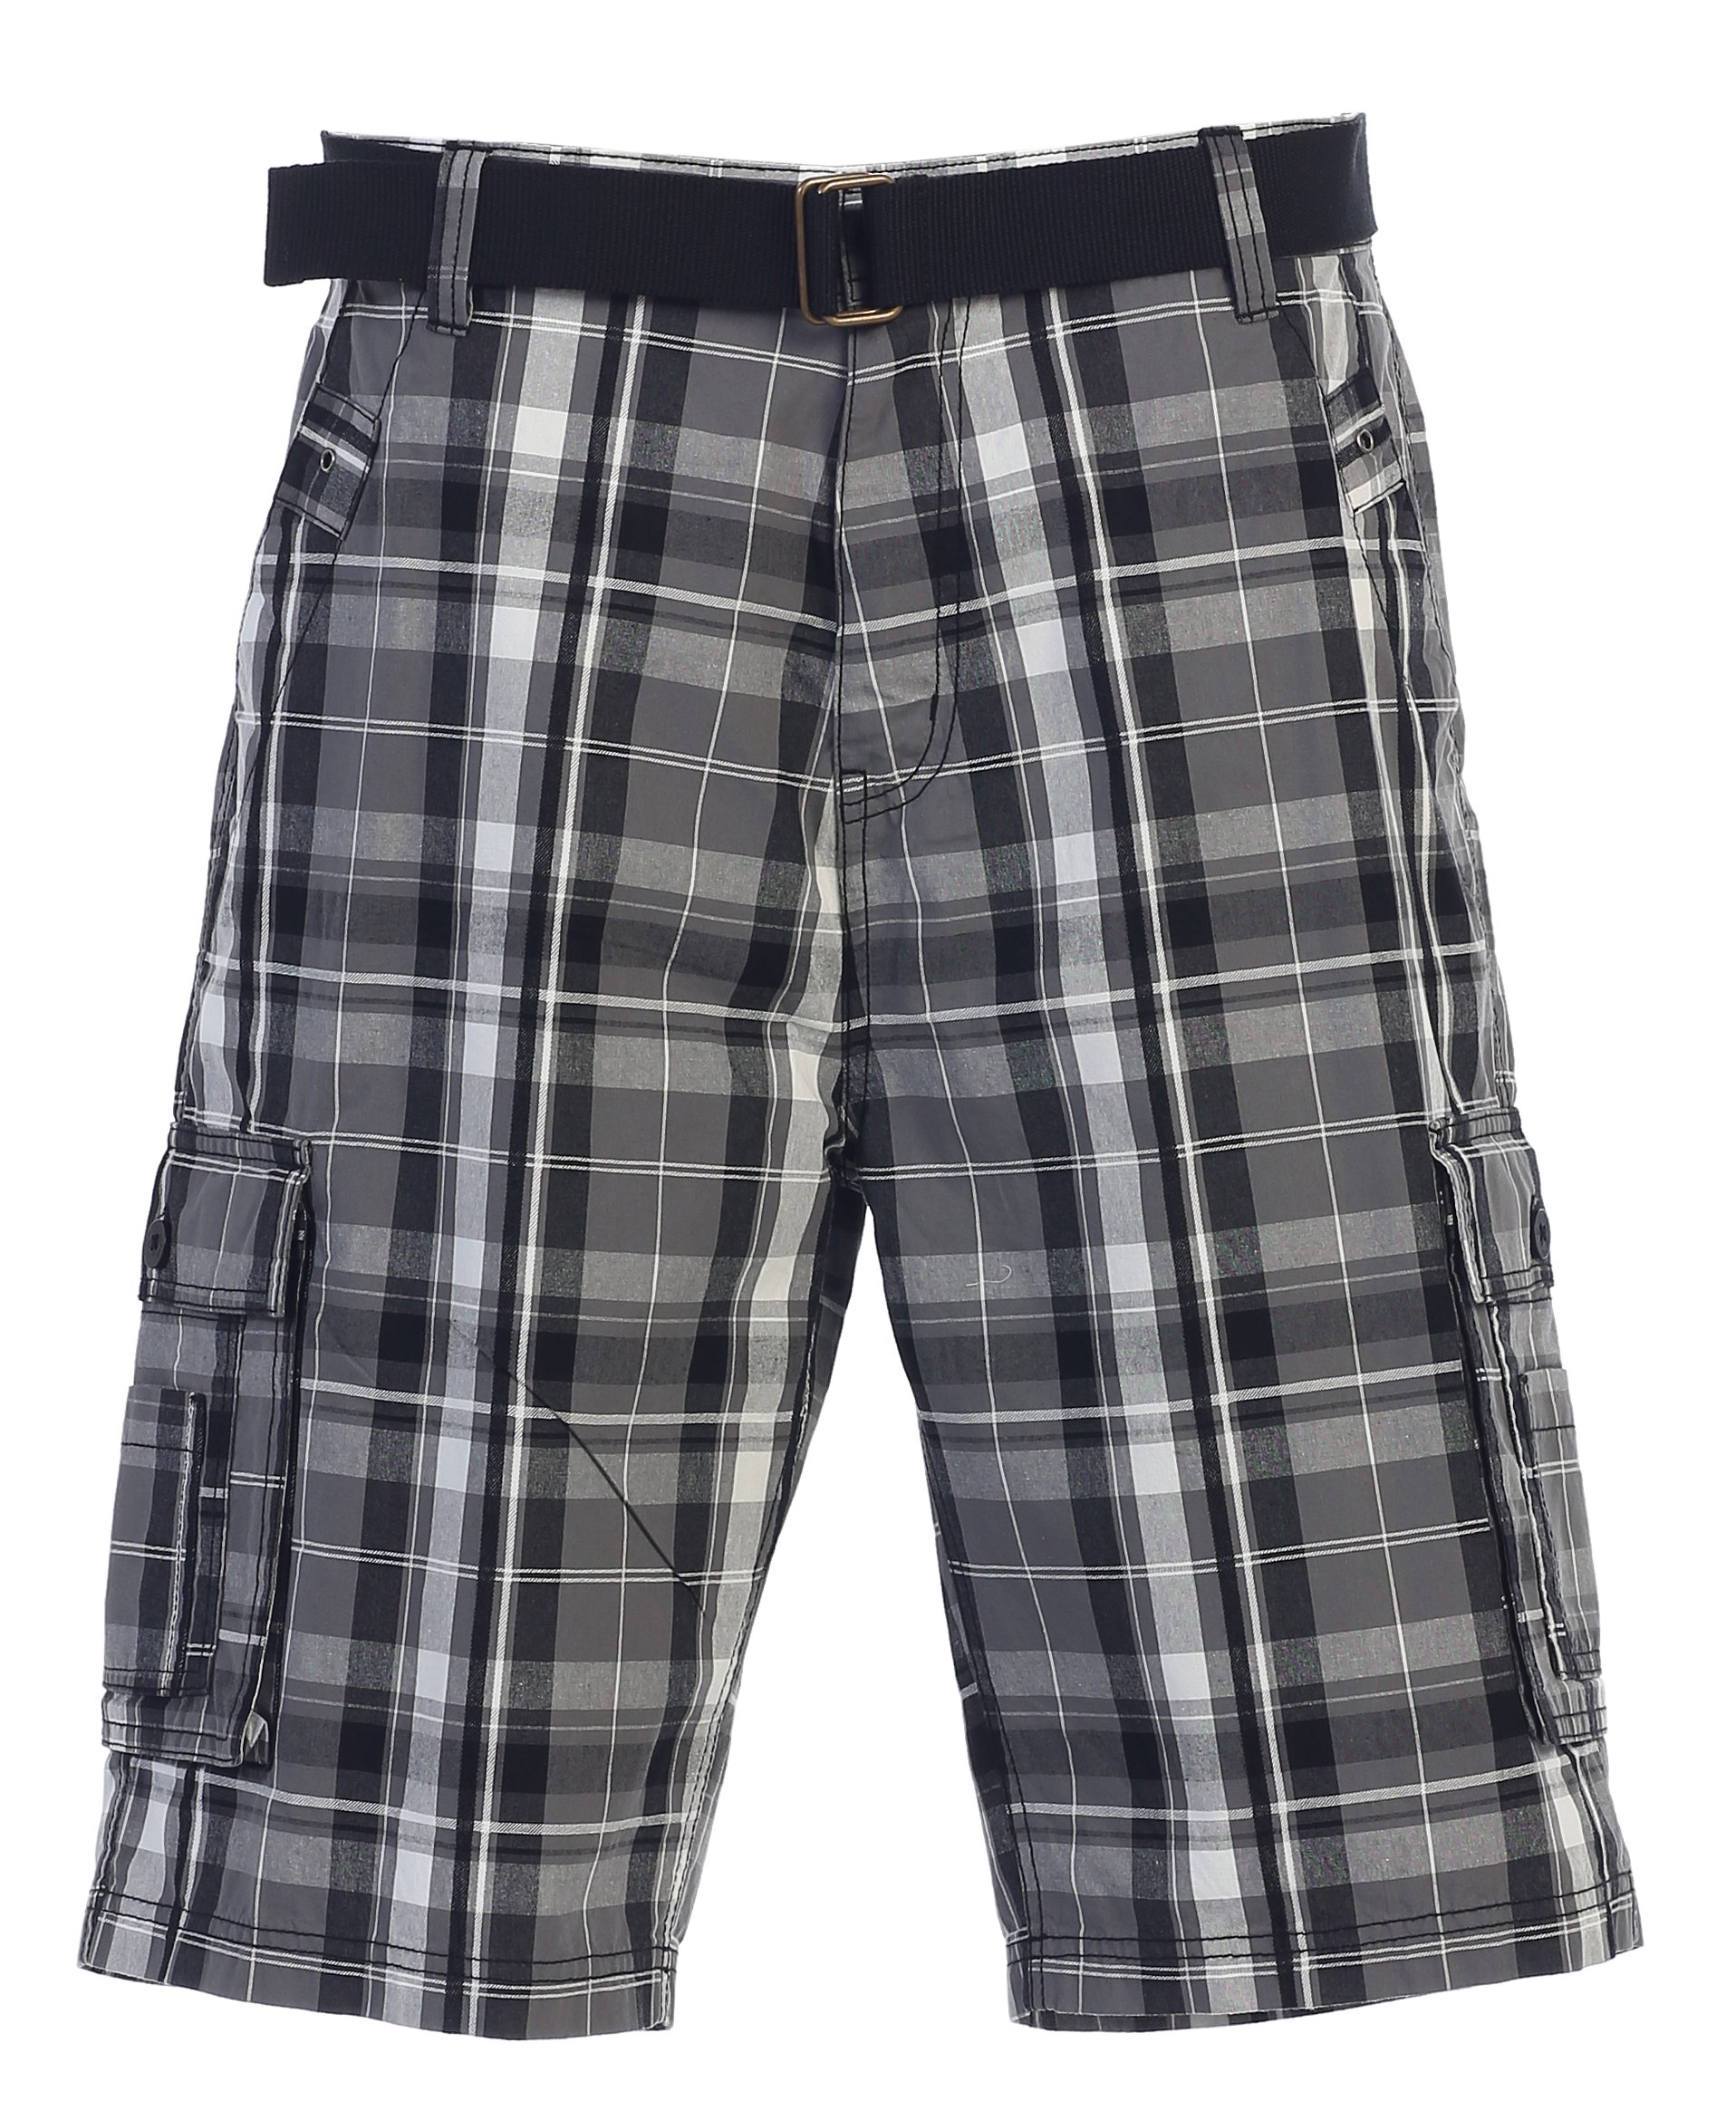 Gioberti Men's Plaid Belted Cargo Shorts, Gray/Charcoal, Size 34